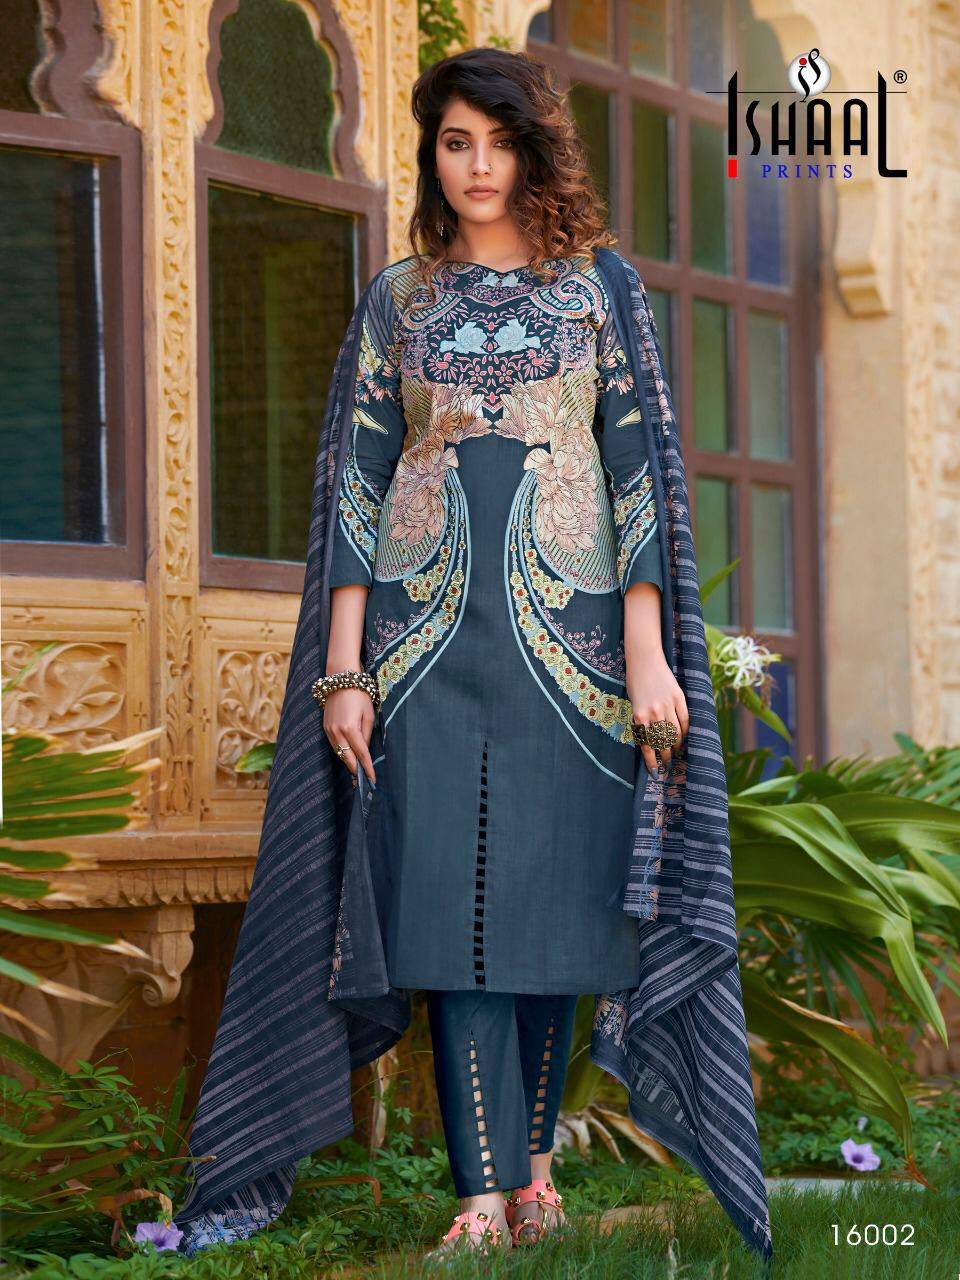 Ishaal Gulmohar Vol 16 Salwar Suit Wholesale Catalog 10 Pcs 7 - Ishaal Gulmohar Vol 16 Salwar Suit Wholesale Catalog 10 Pcs